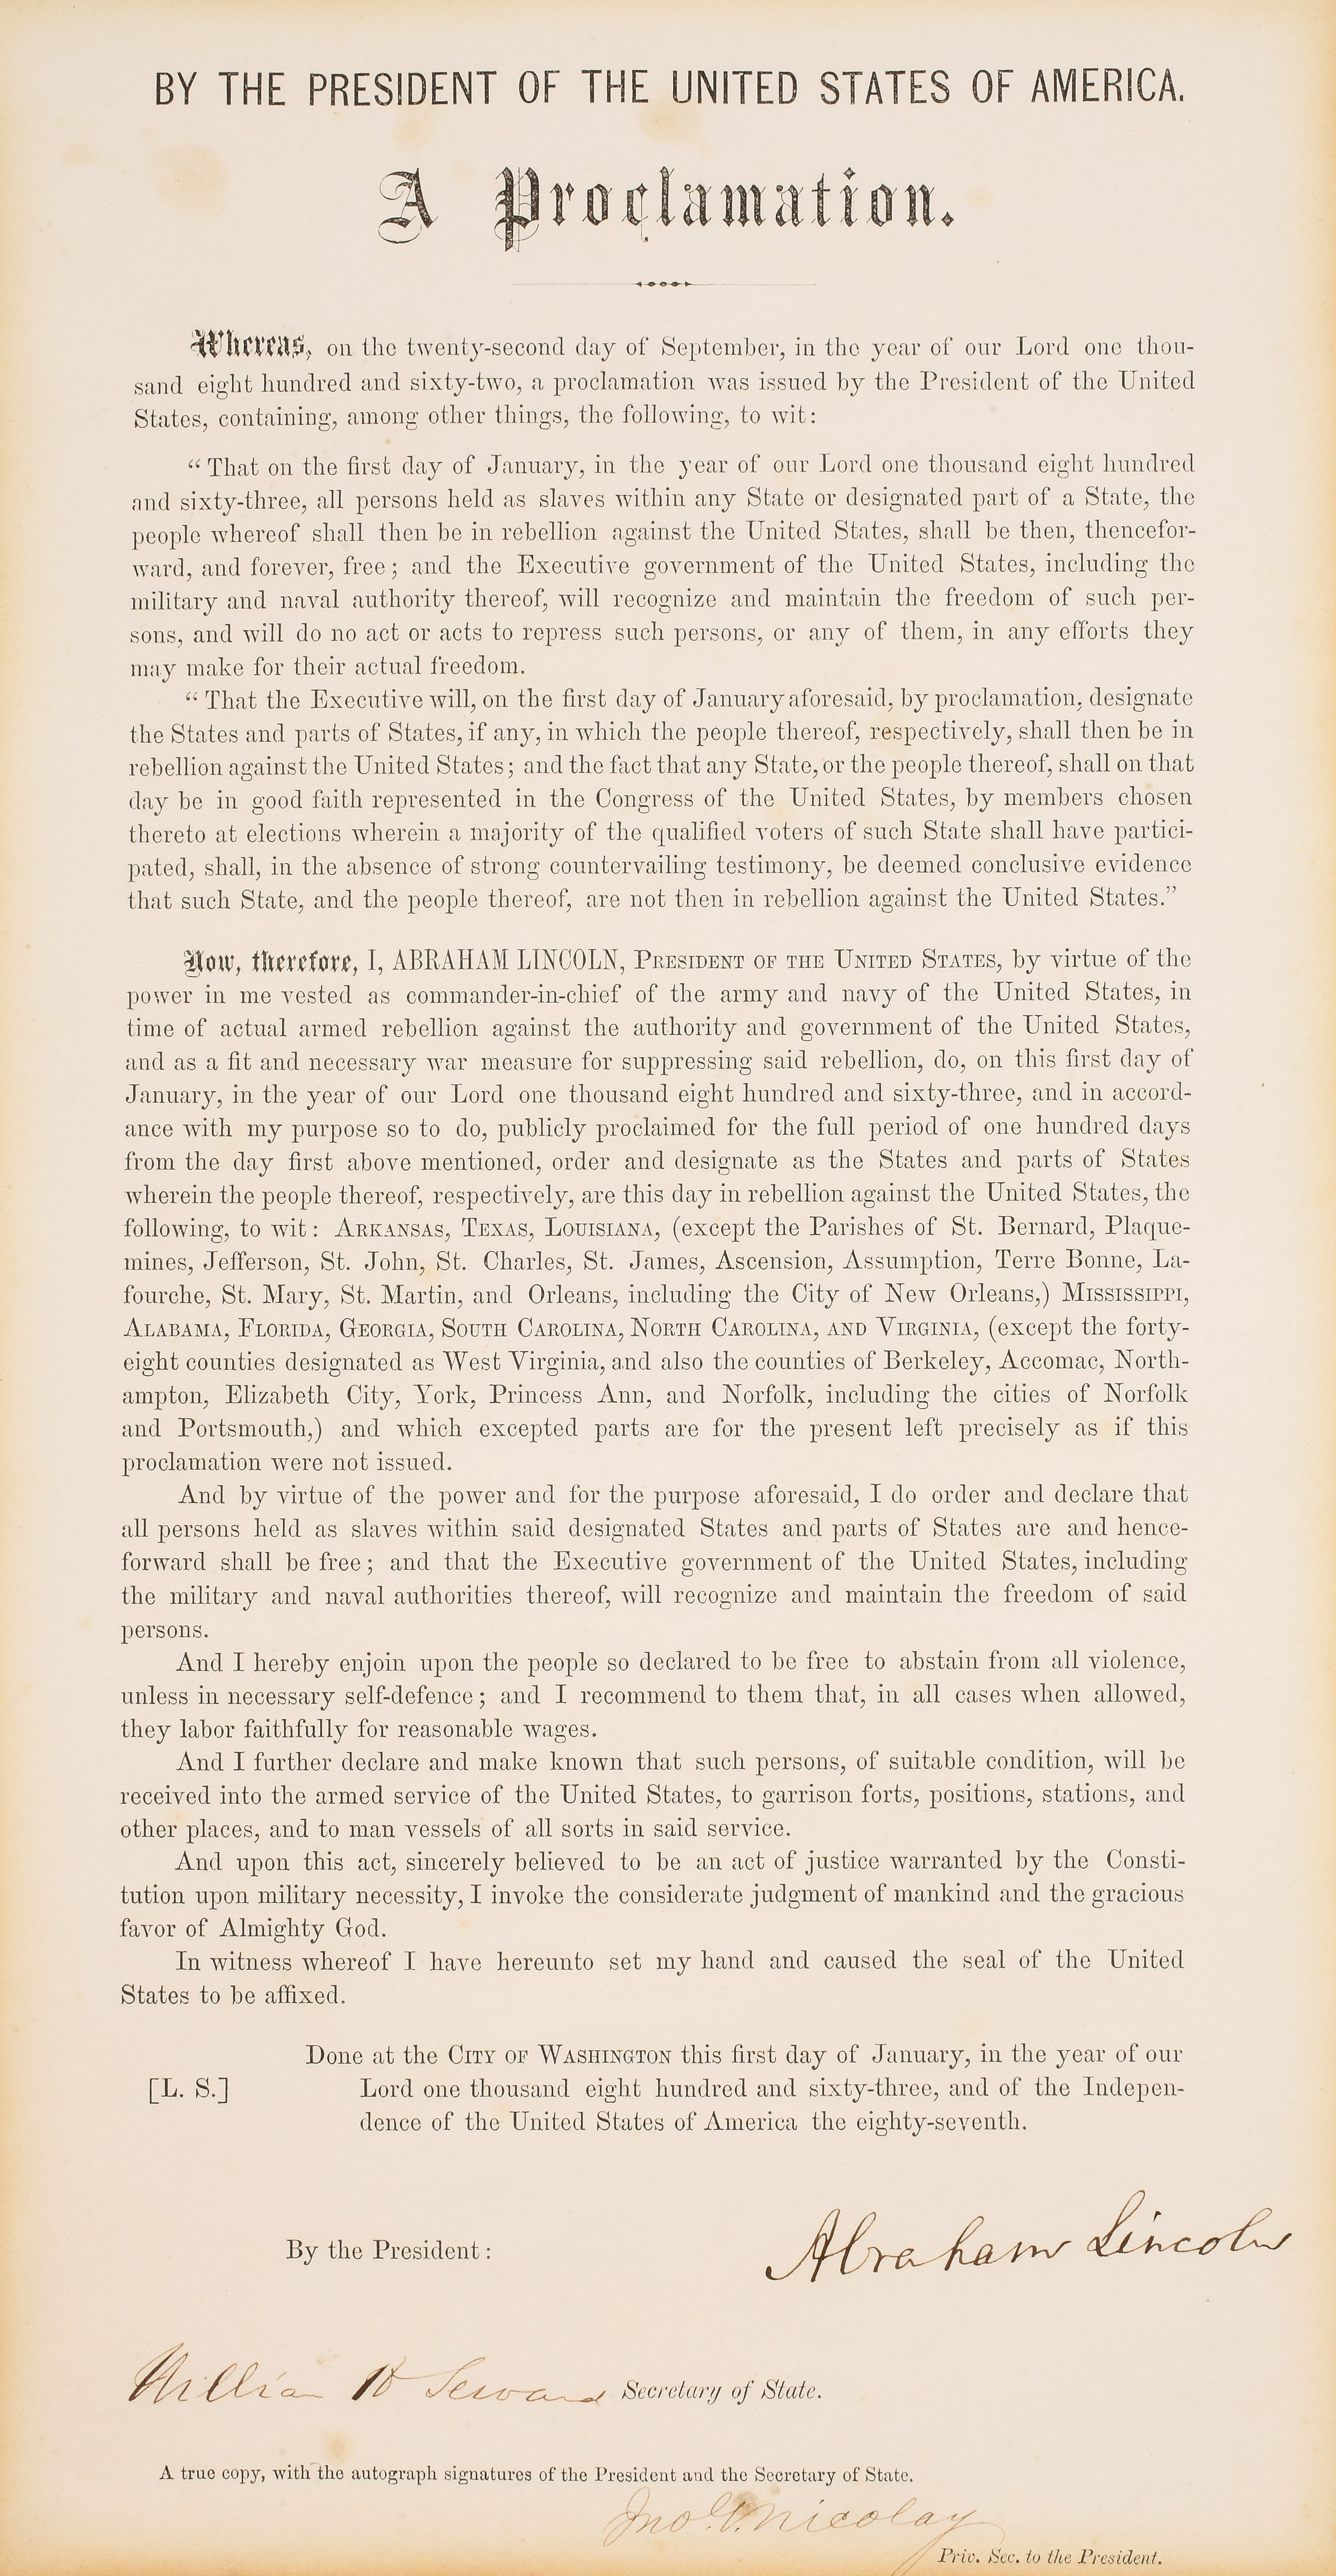 The copy of the Emancipation Proclamation that will be offered for sale.